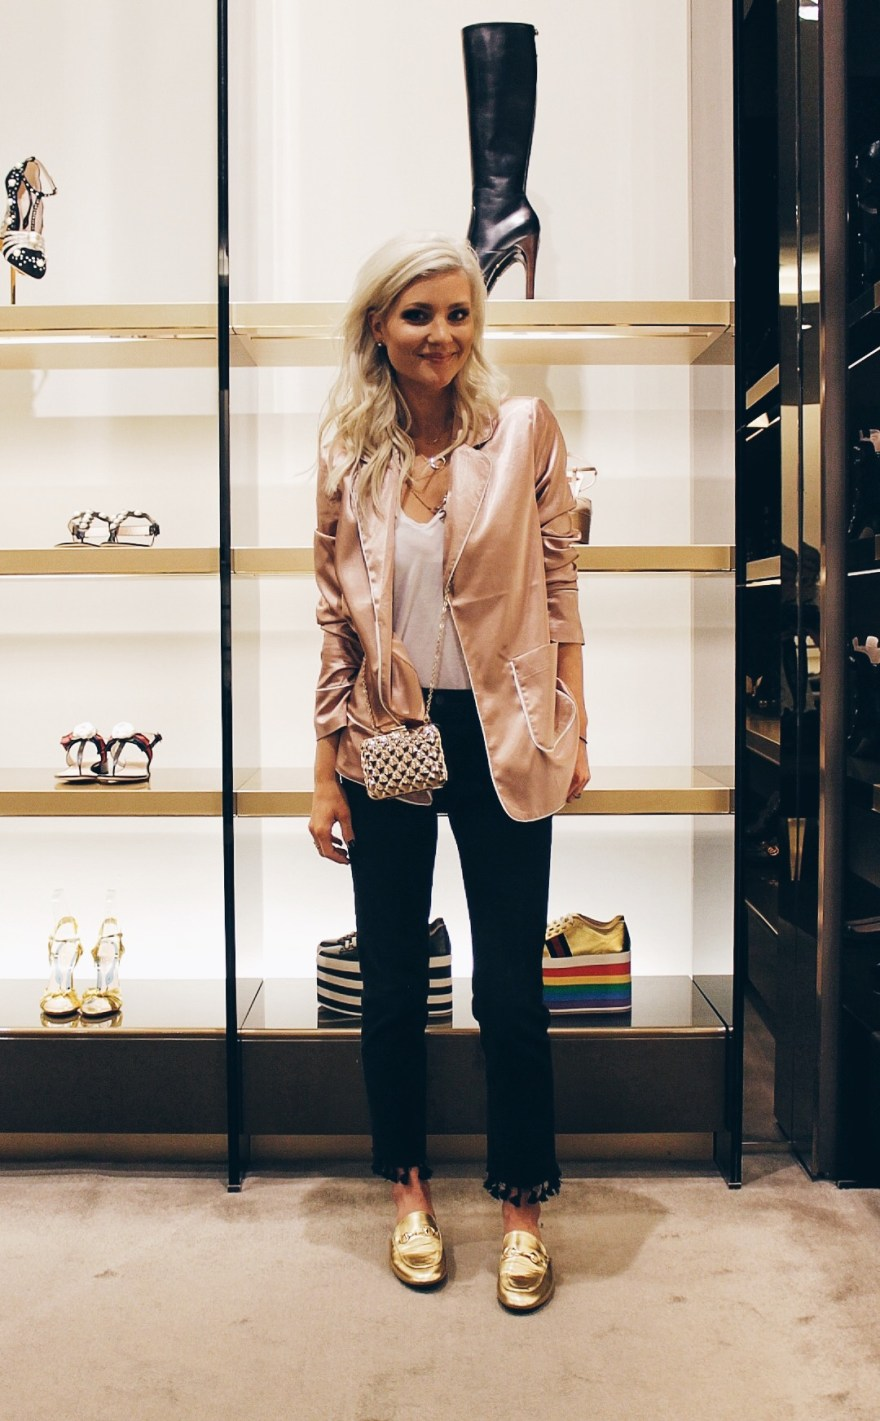 galentines day, valentines day, gucci, fashion blogger, fashion, style, gifts, gucci purse, gucci bag, loafers, mules, outfit, lindsey simon, the nomis niche, las vegas fashion blogger, the forum shops, caesars palace